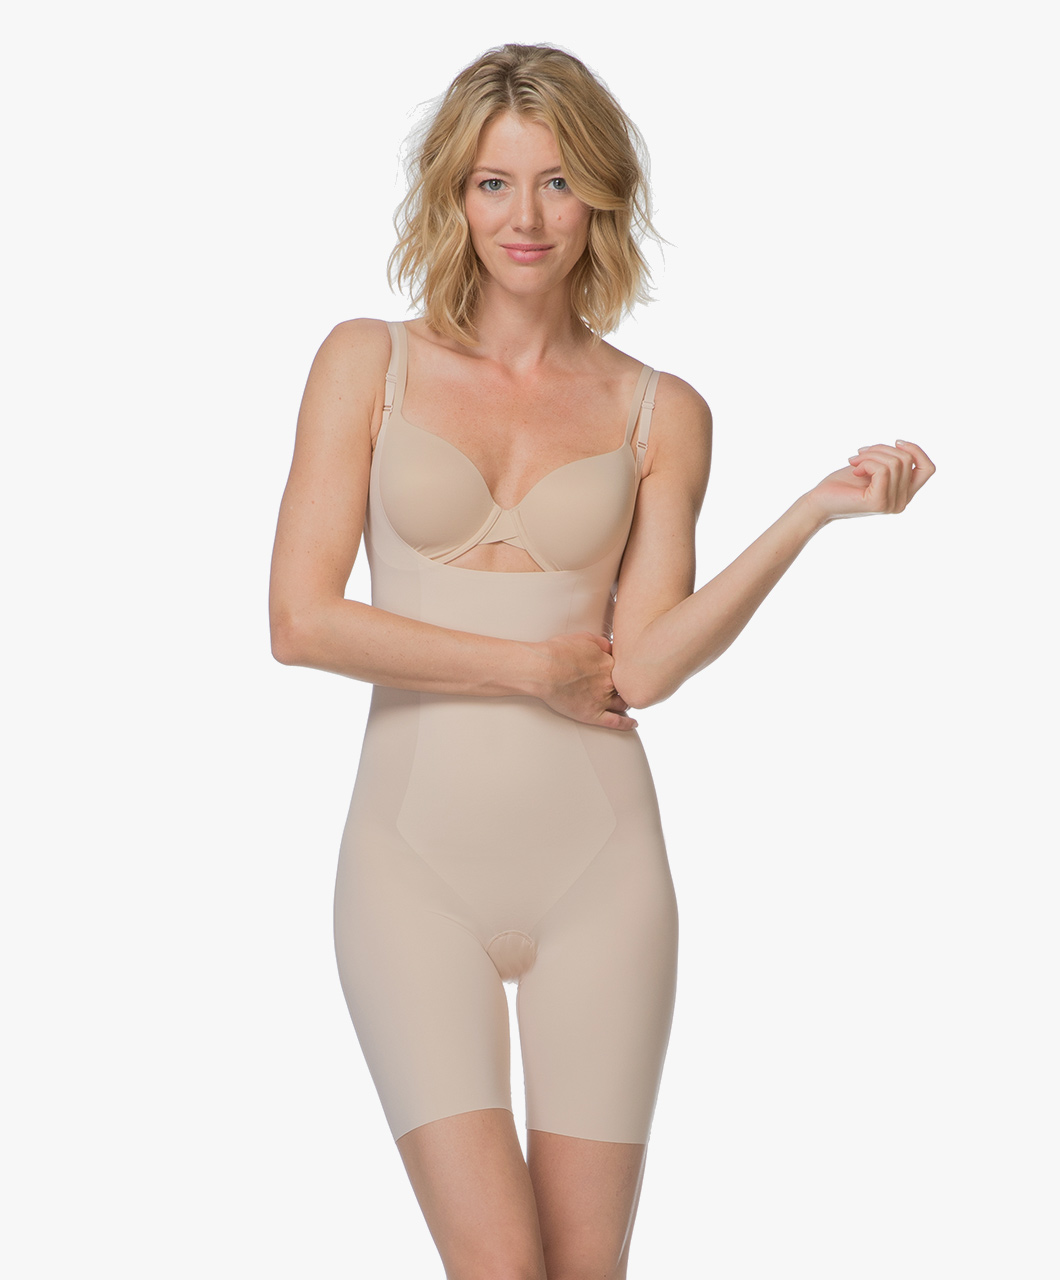 83a3e5f8808d1 SPANX® Thinstincts Open-Bust Bodysuit - Soft Nude - Spanx Shapewear